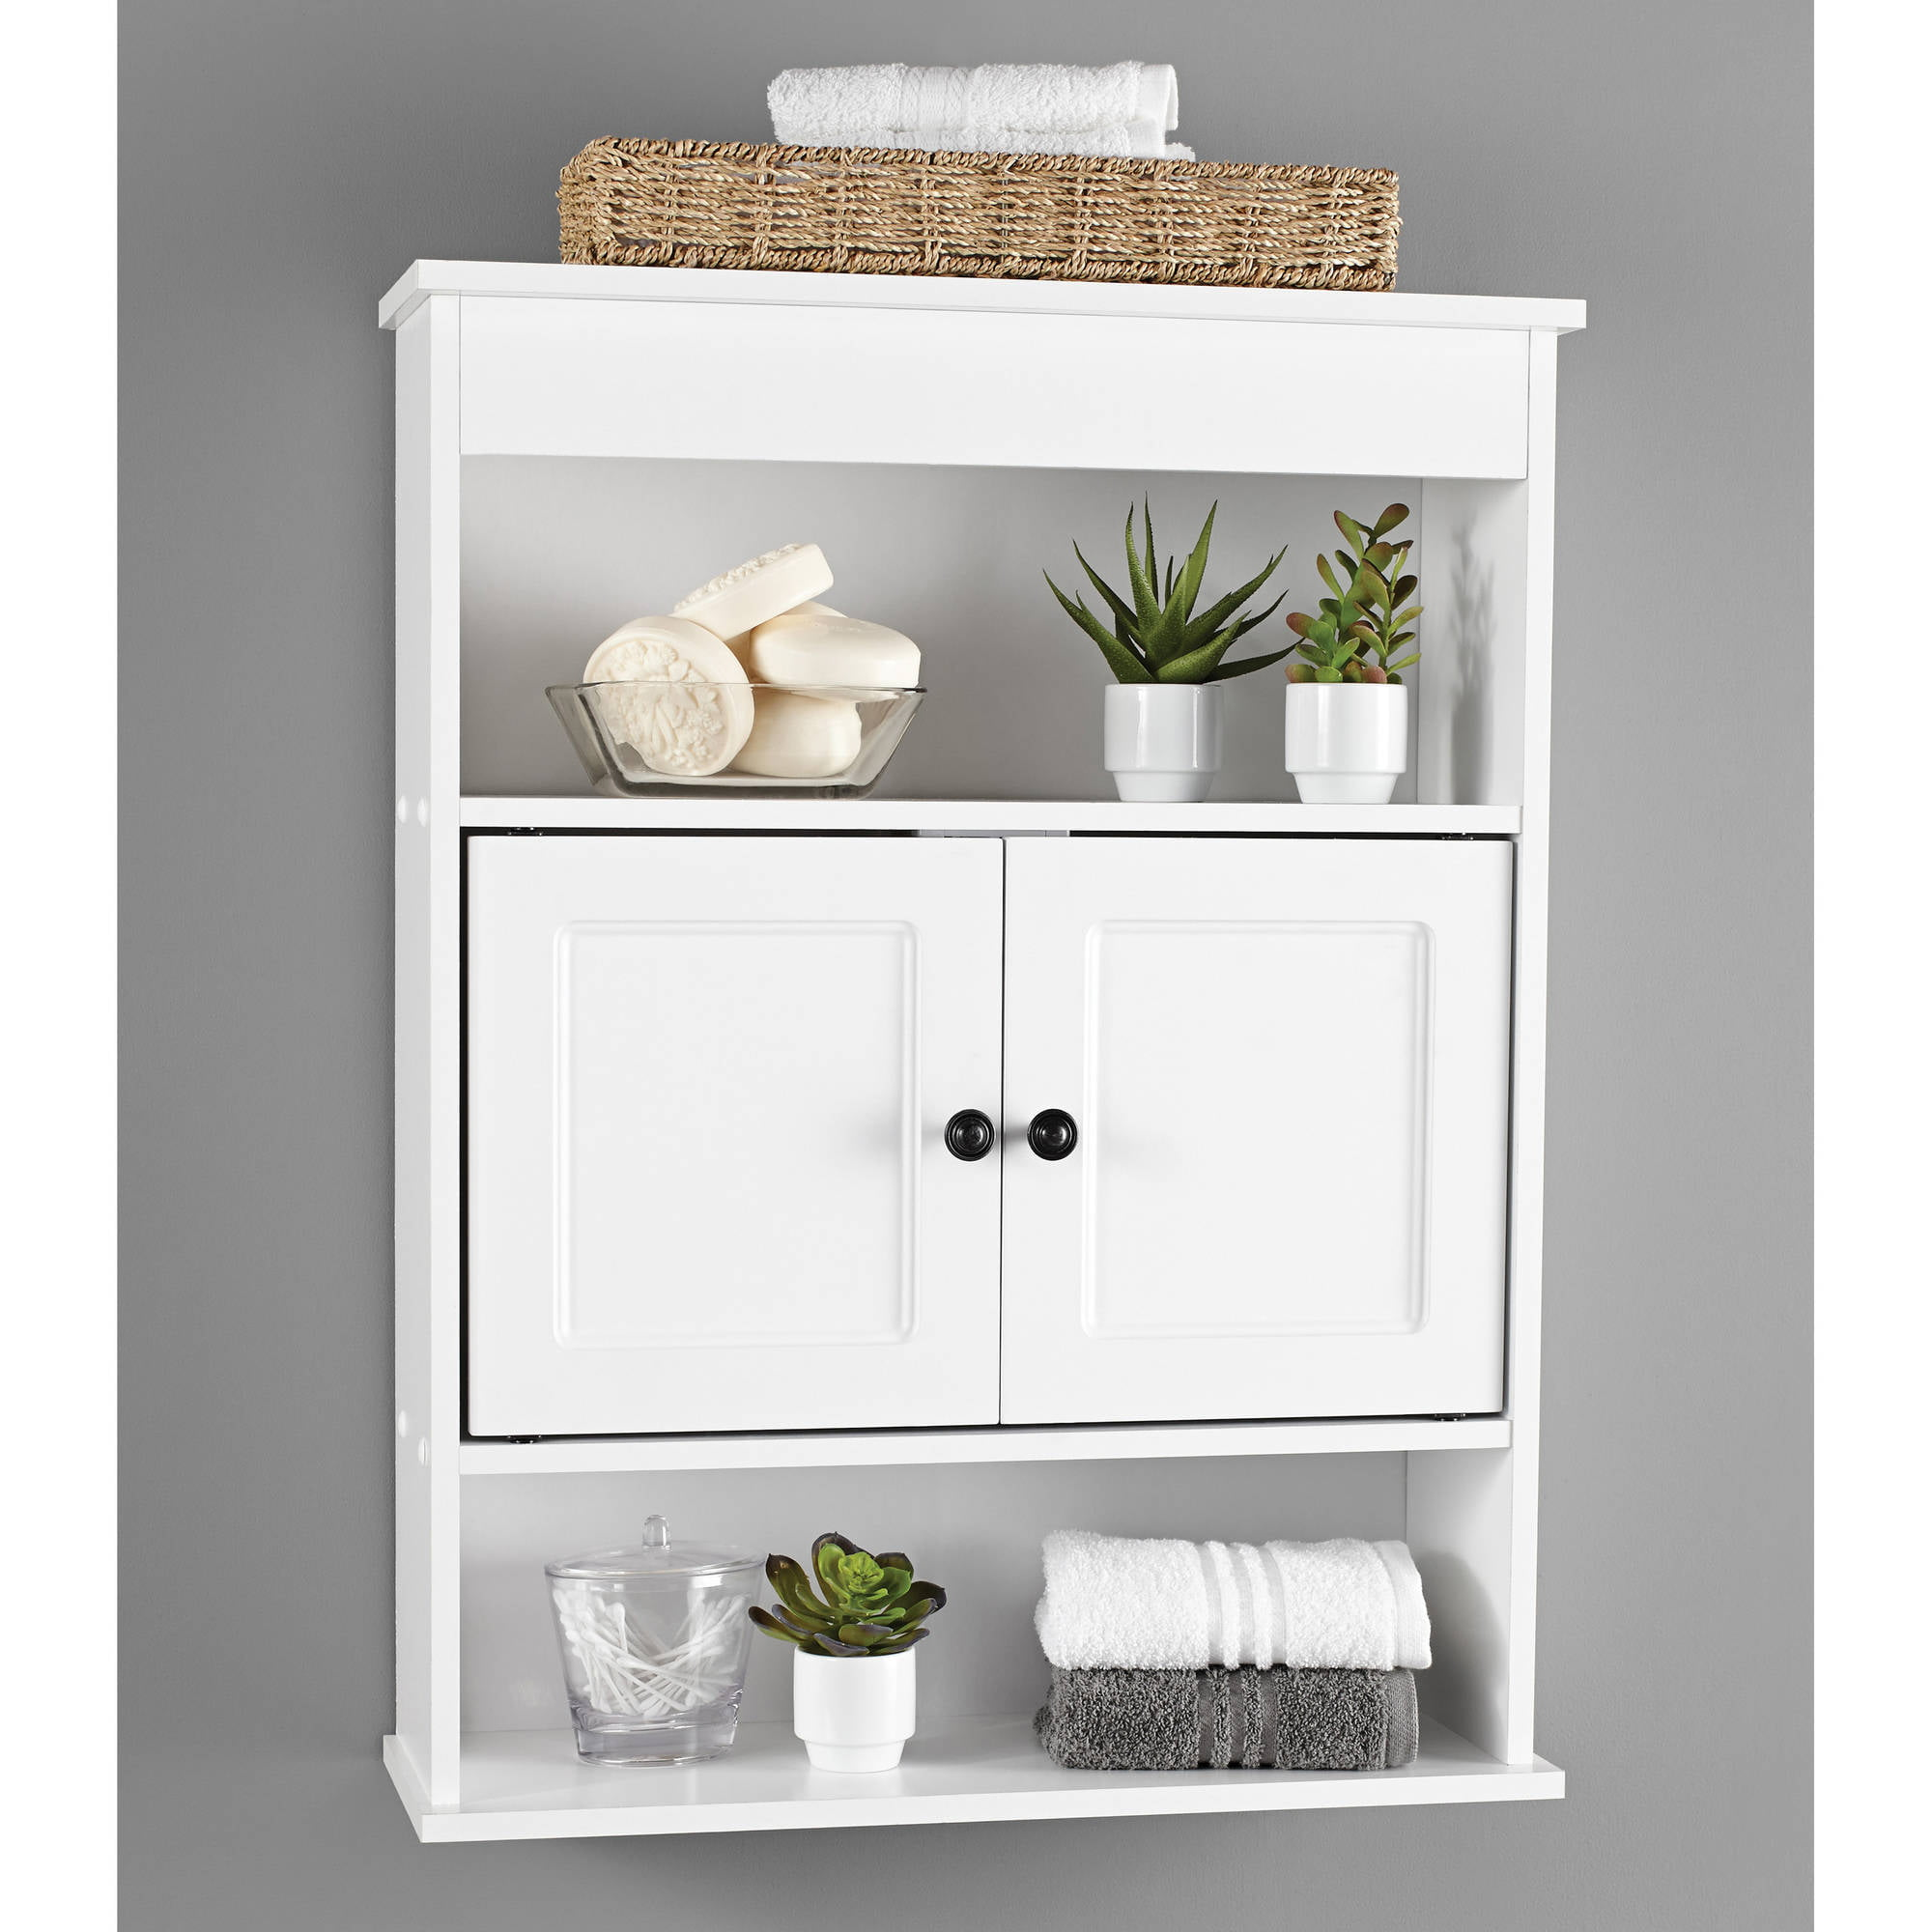 White Bathroom Wall Cabinets chapter bathroom wall cabinet, white - walmart